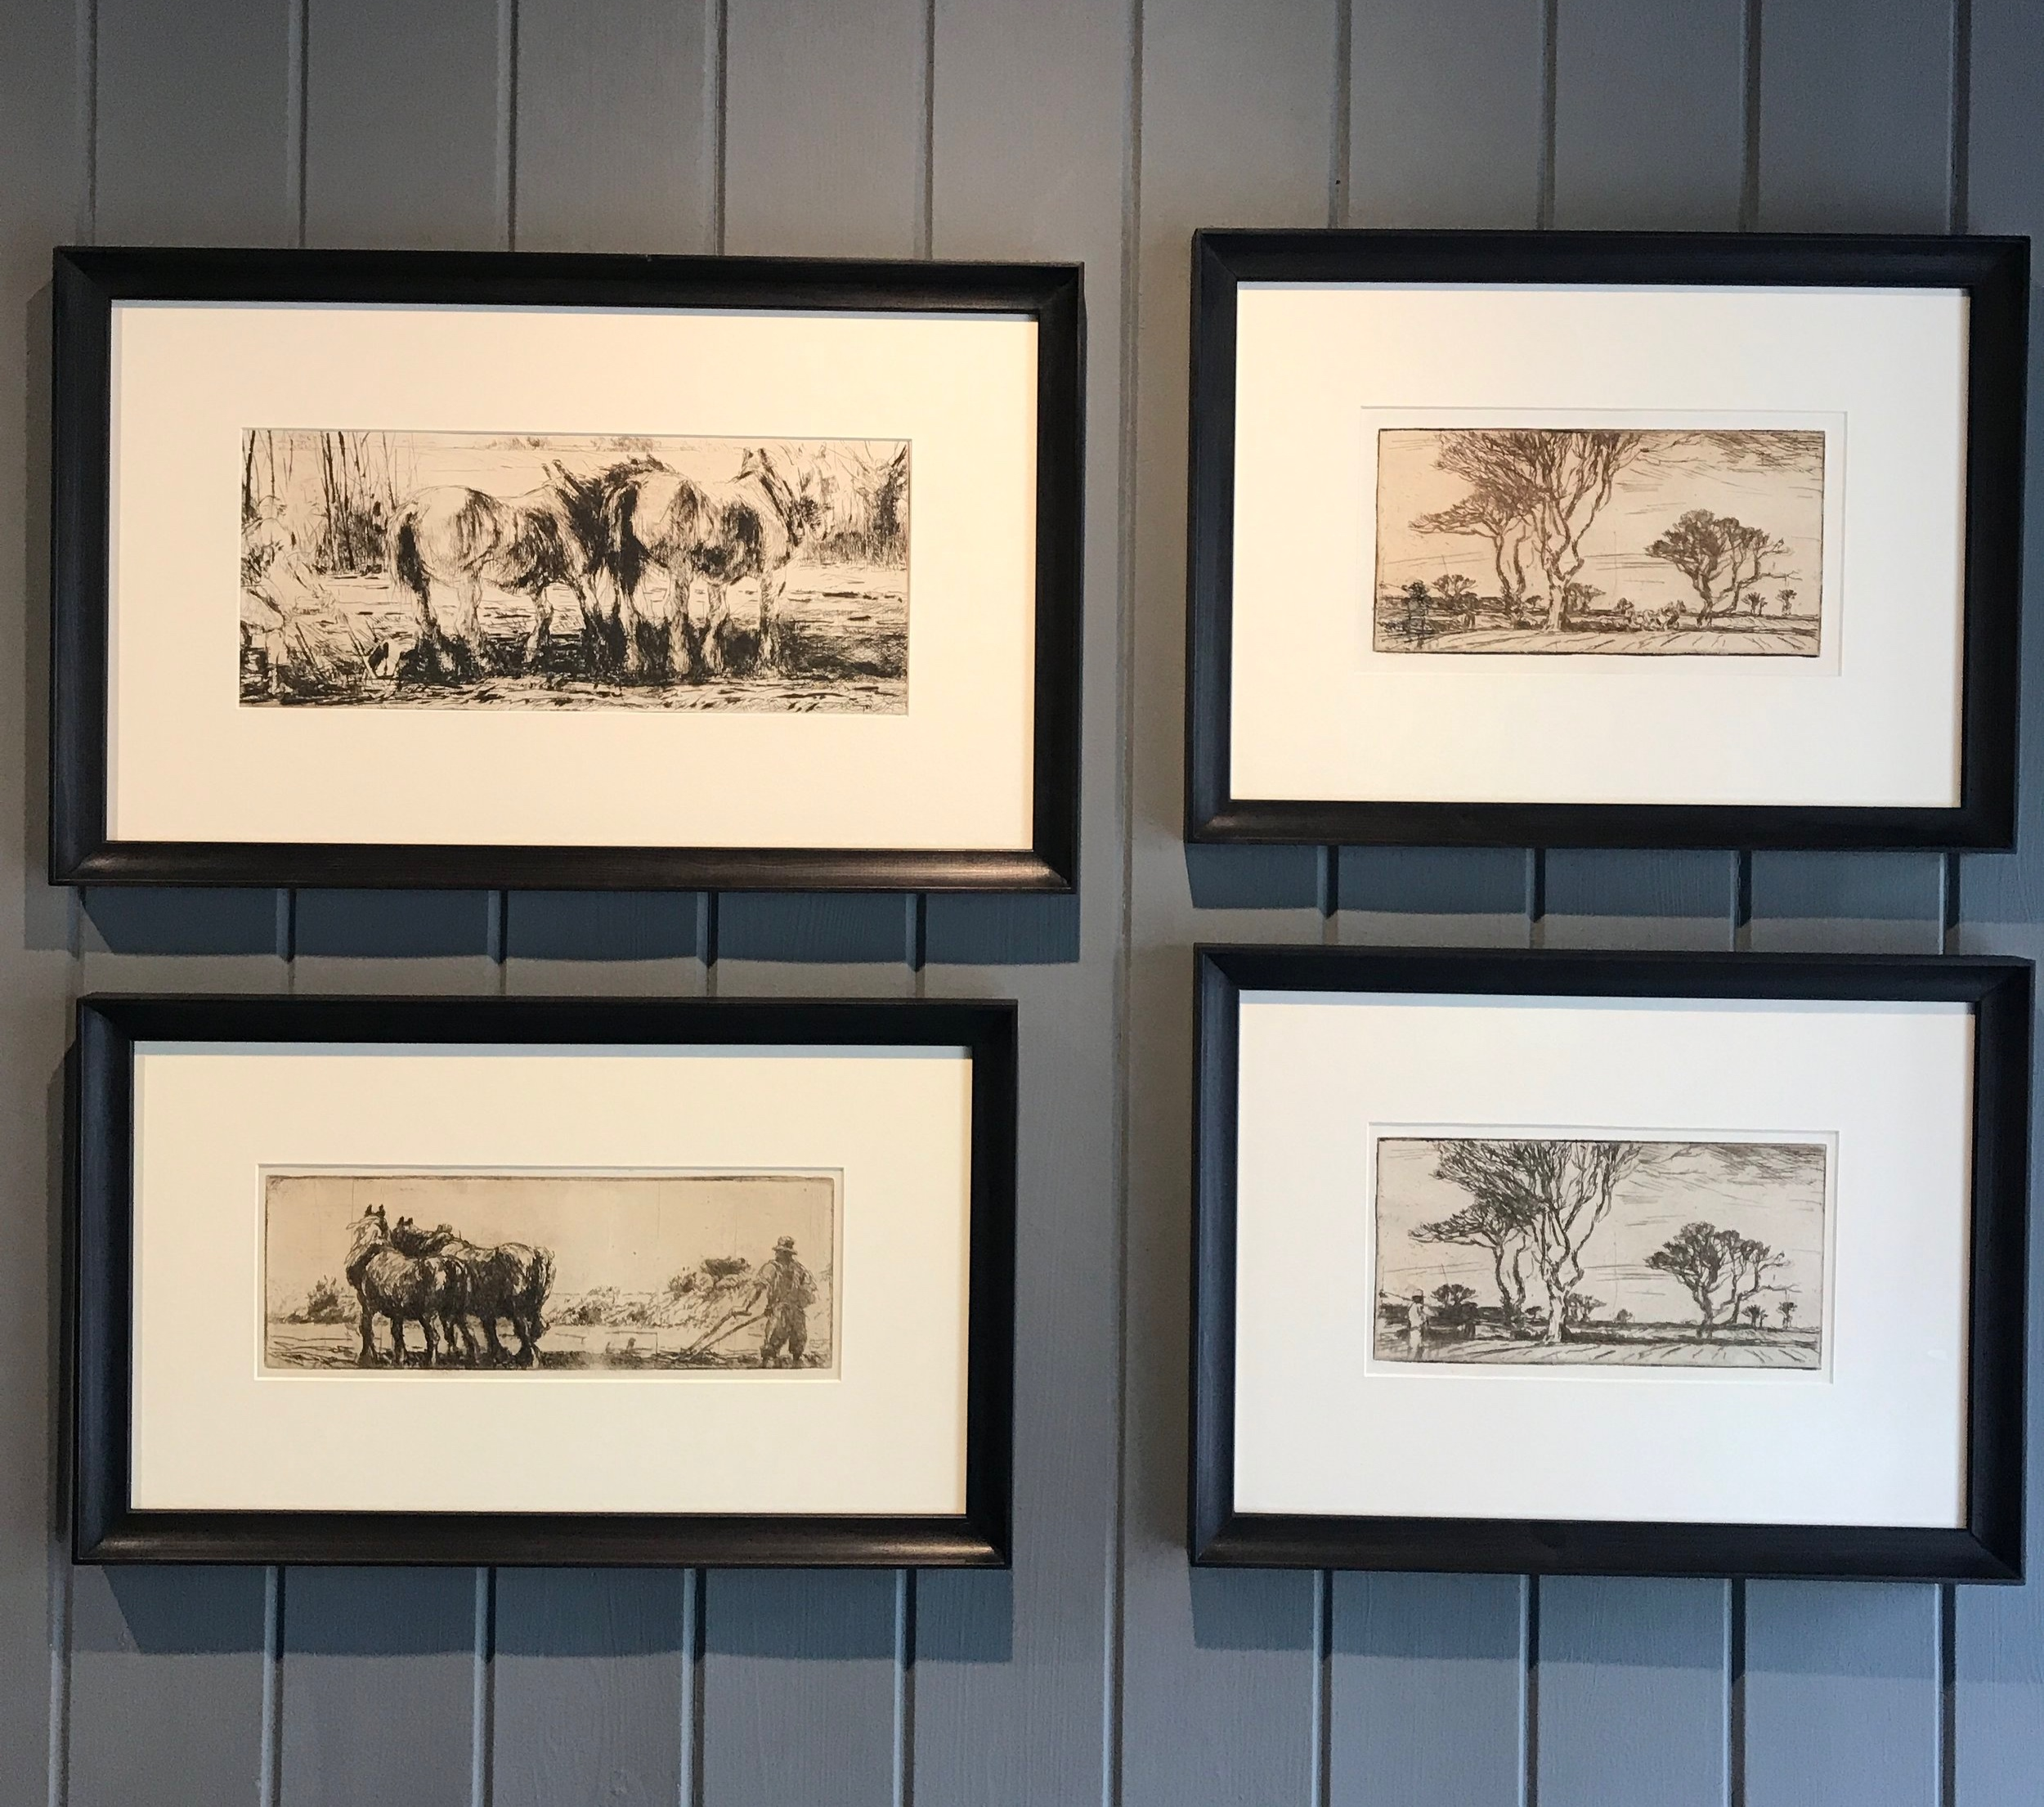 Top left to right -  Harry Becker : 1/ Plough Team,  c.1920s. Etching on paper. 2 /Distant Plough Team om Tree lined Landscape,  c.1910s. Etching on paper.  Bottom left to right -  Harry Becker  1/ Ploughing,  c.1910s. Etching on paper. Brown ink. 2/ Field worker in Tree lined Landscape , 1910s. Etching on paper.